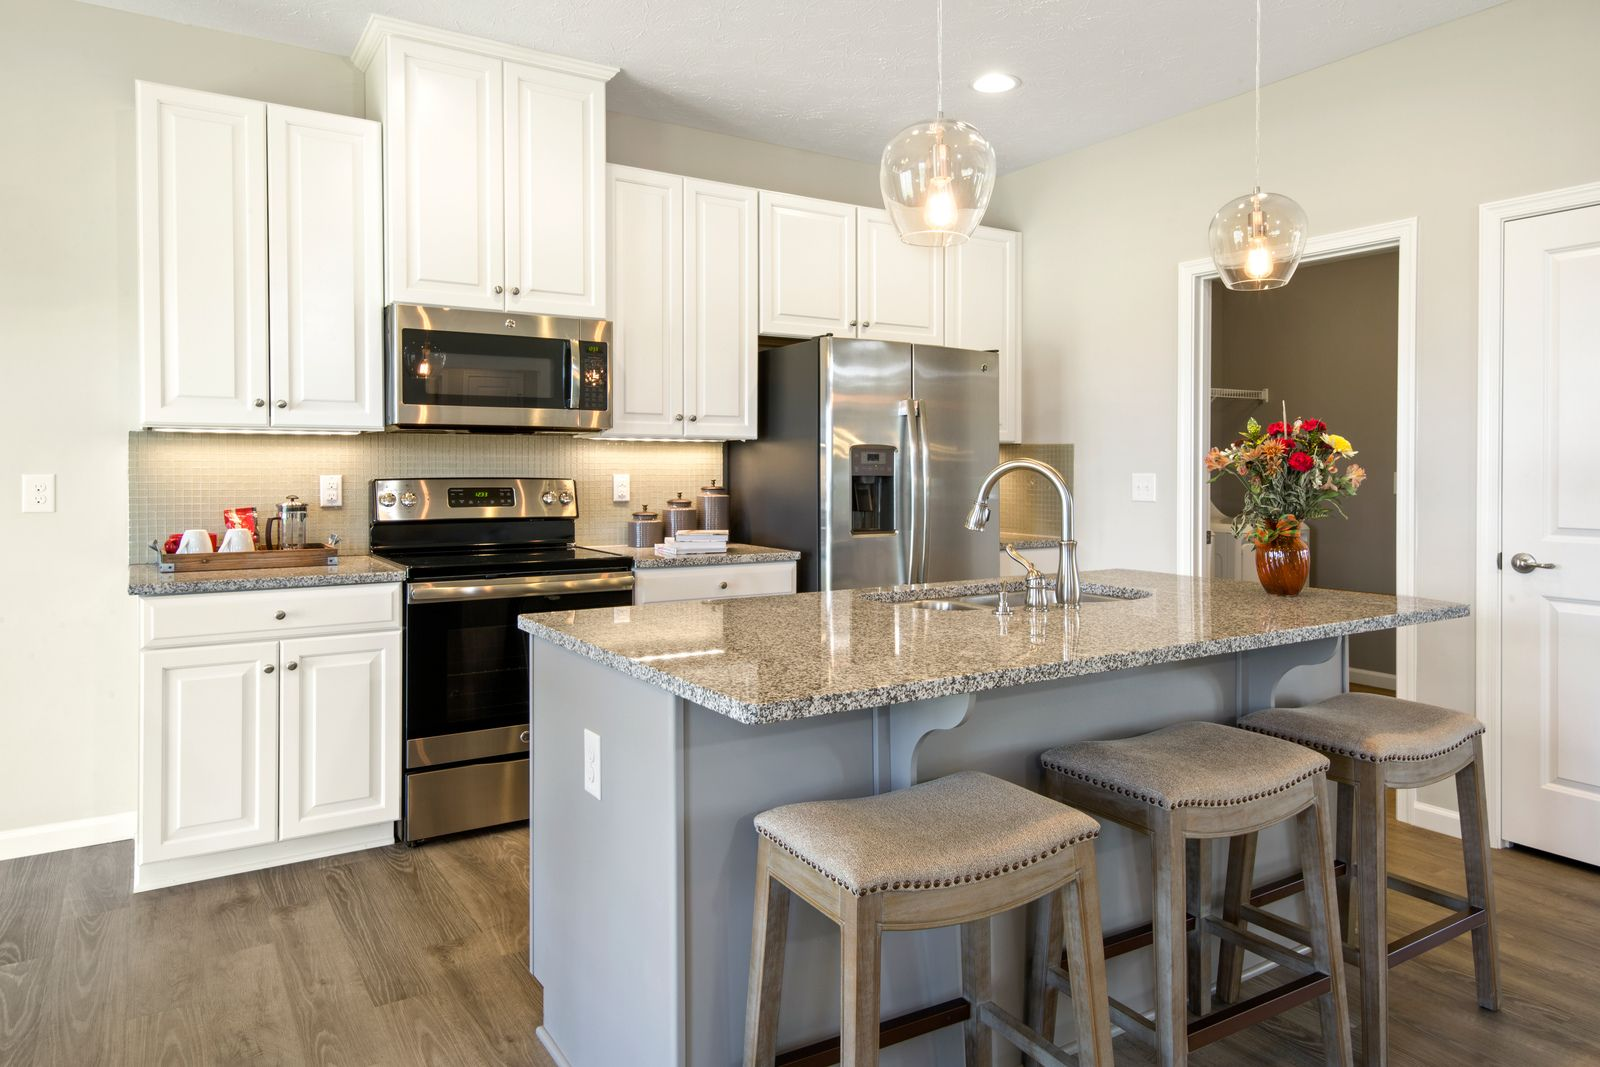 Aviano Plan At Windsor Estates In Liberty Township Oh By Ryan Homes